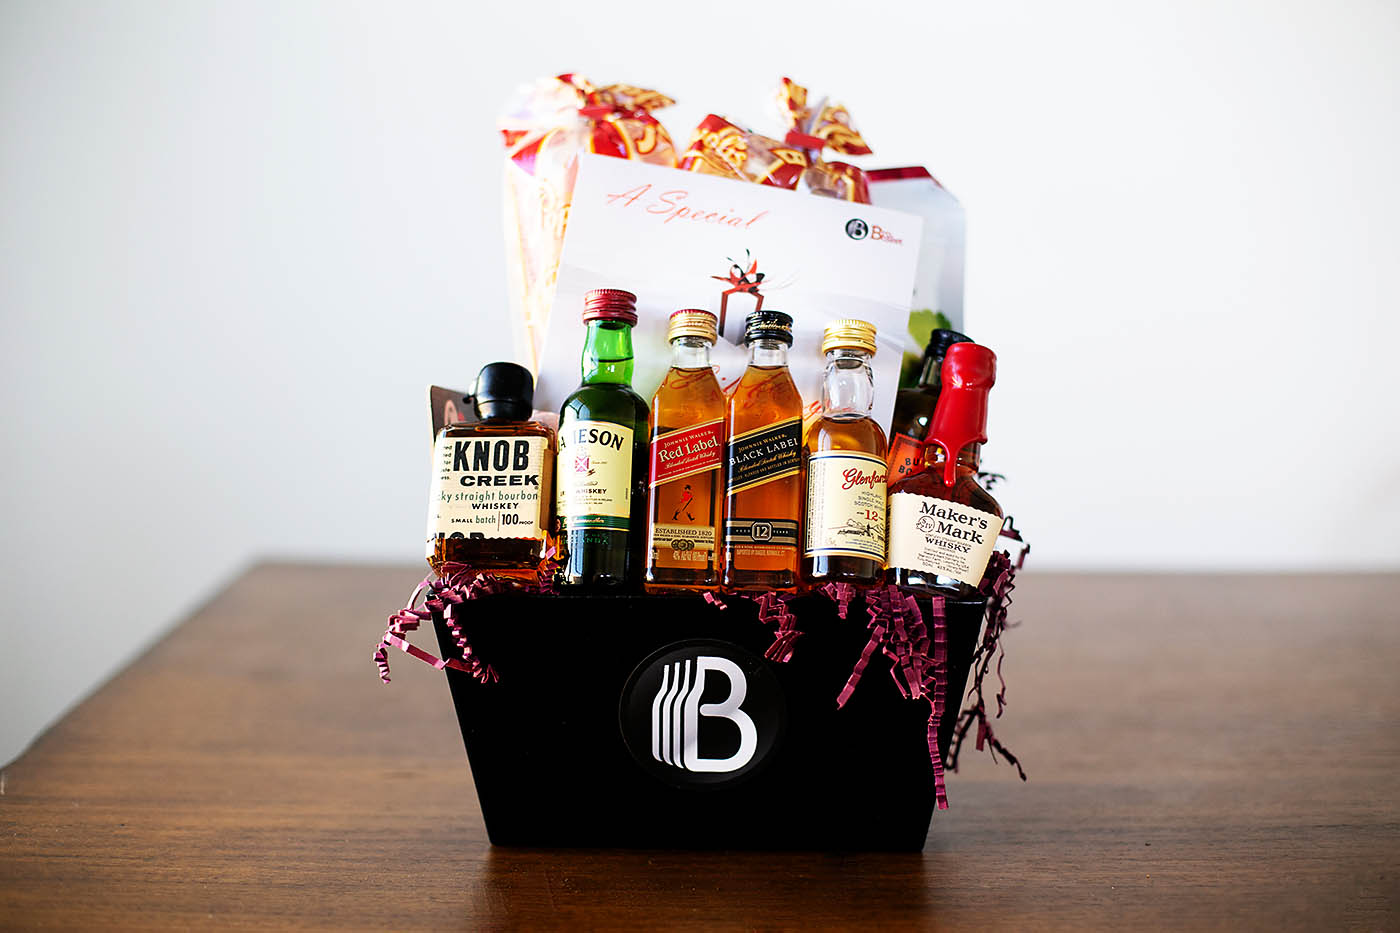 Father's Day gift idea - a Day with Dad ending with an awesome BroBasket